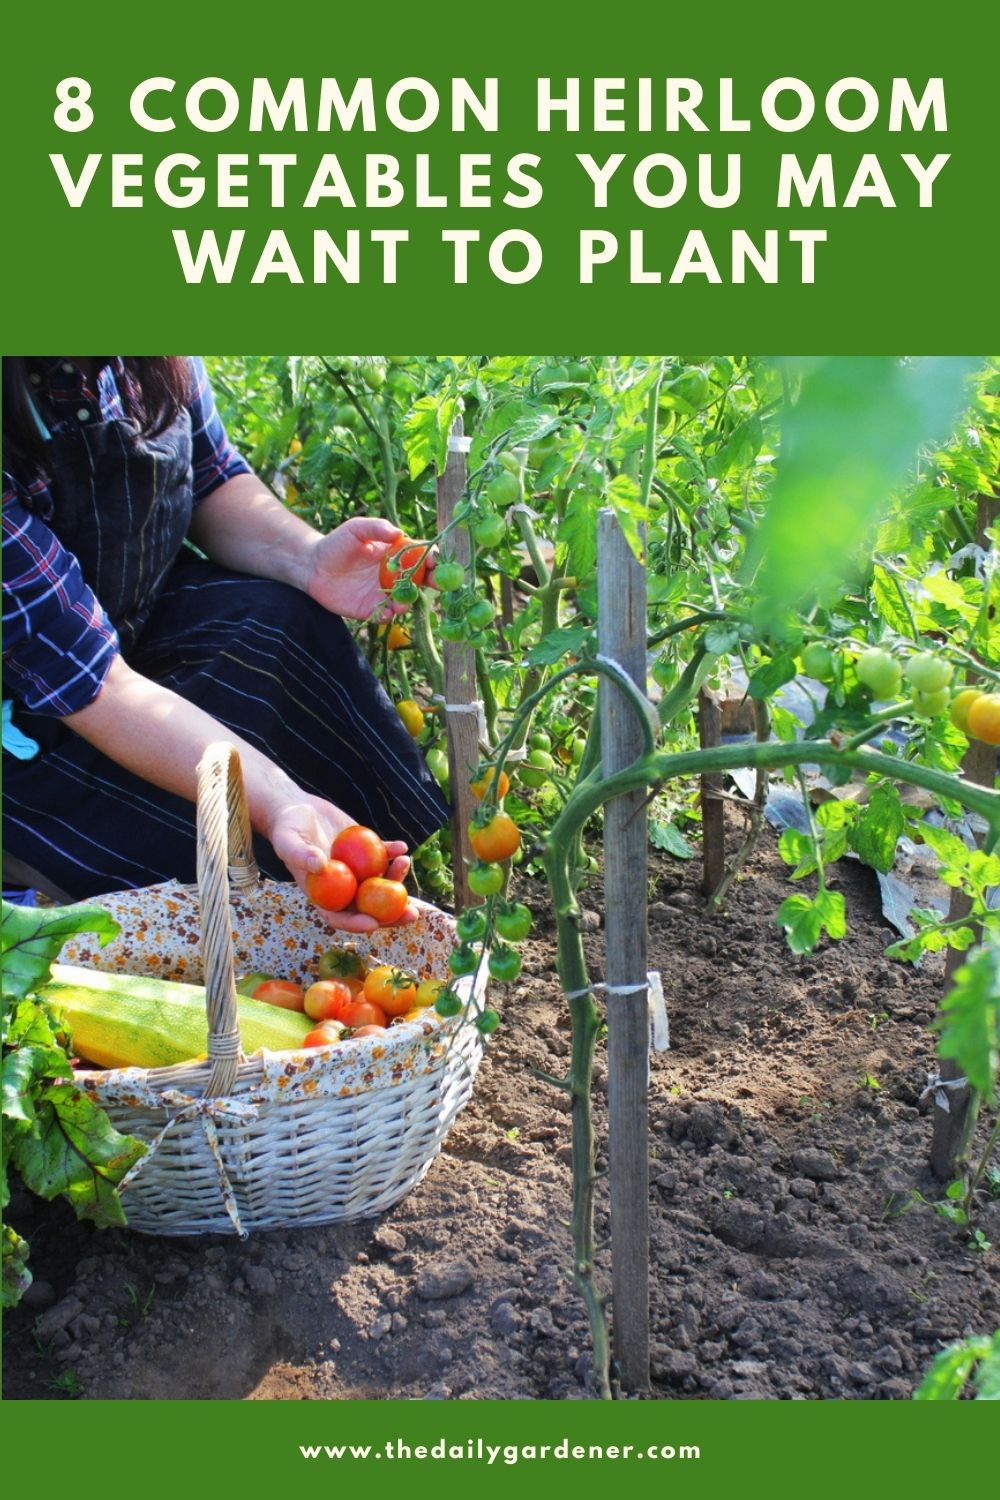 8 Common Heirloom Vegetables You May Want to Plant 1